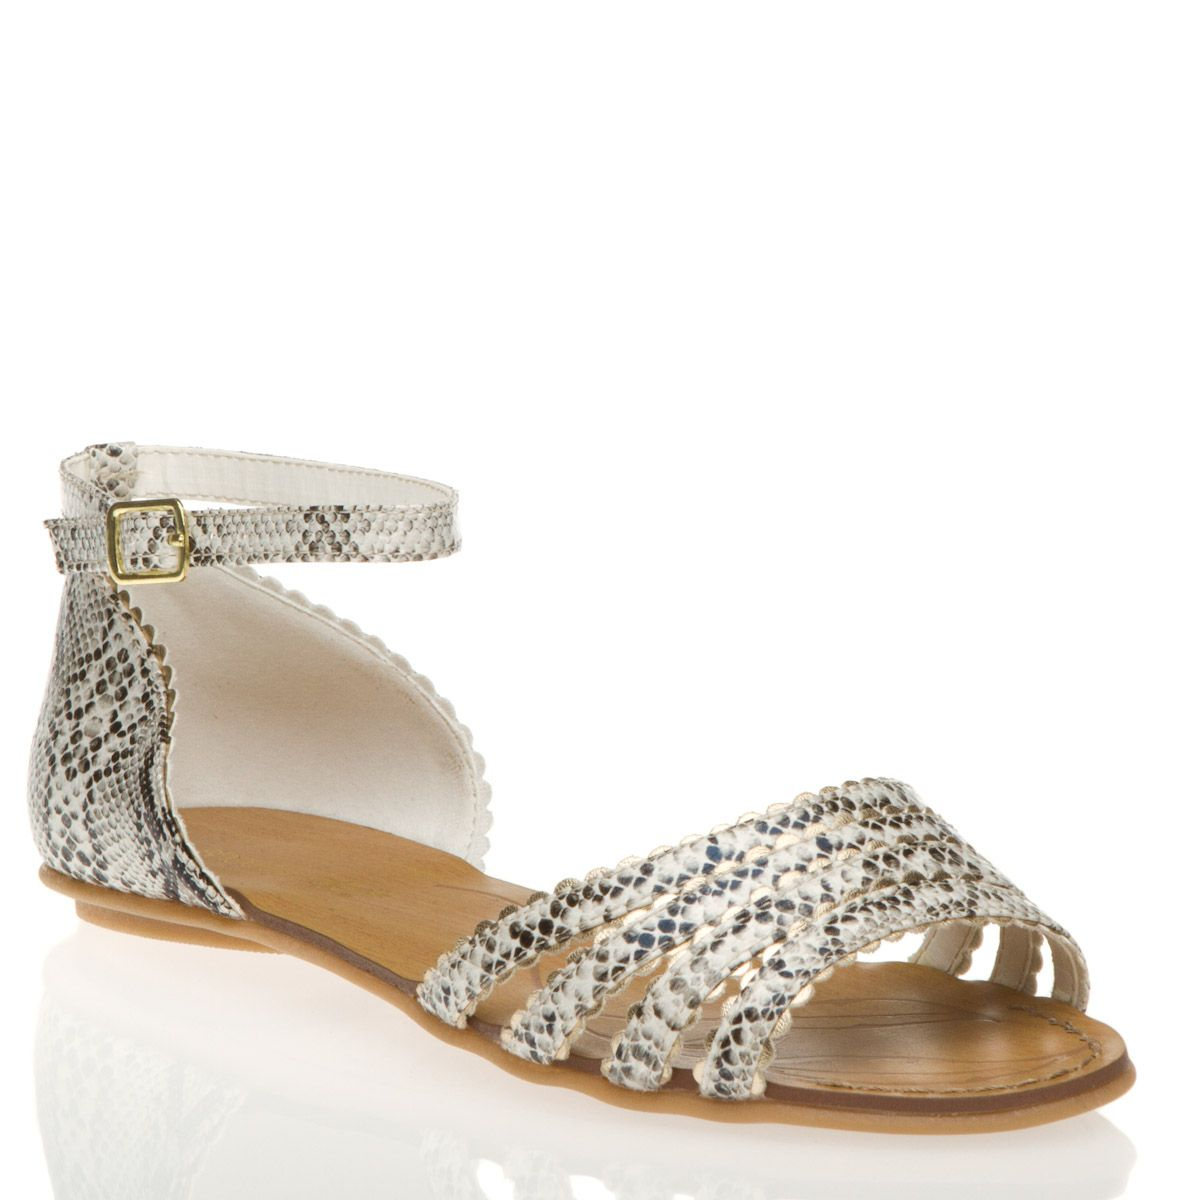 Exotic ankle-strap sandal, and its metallic with scalloped trim.